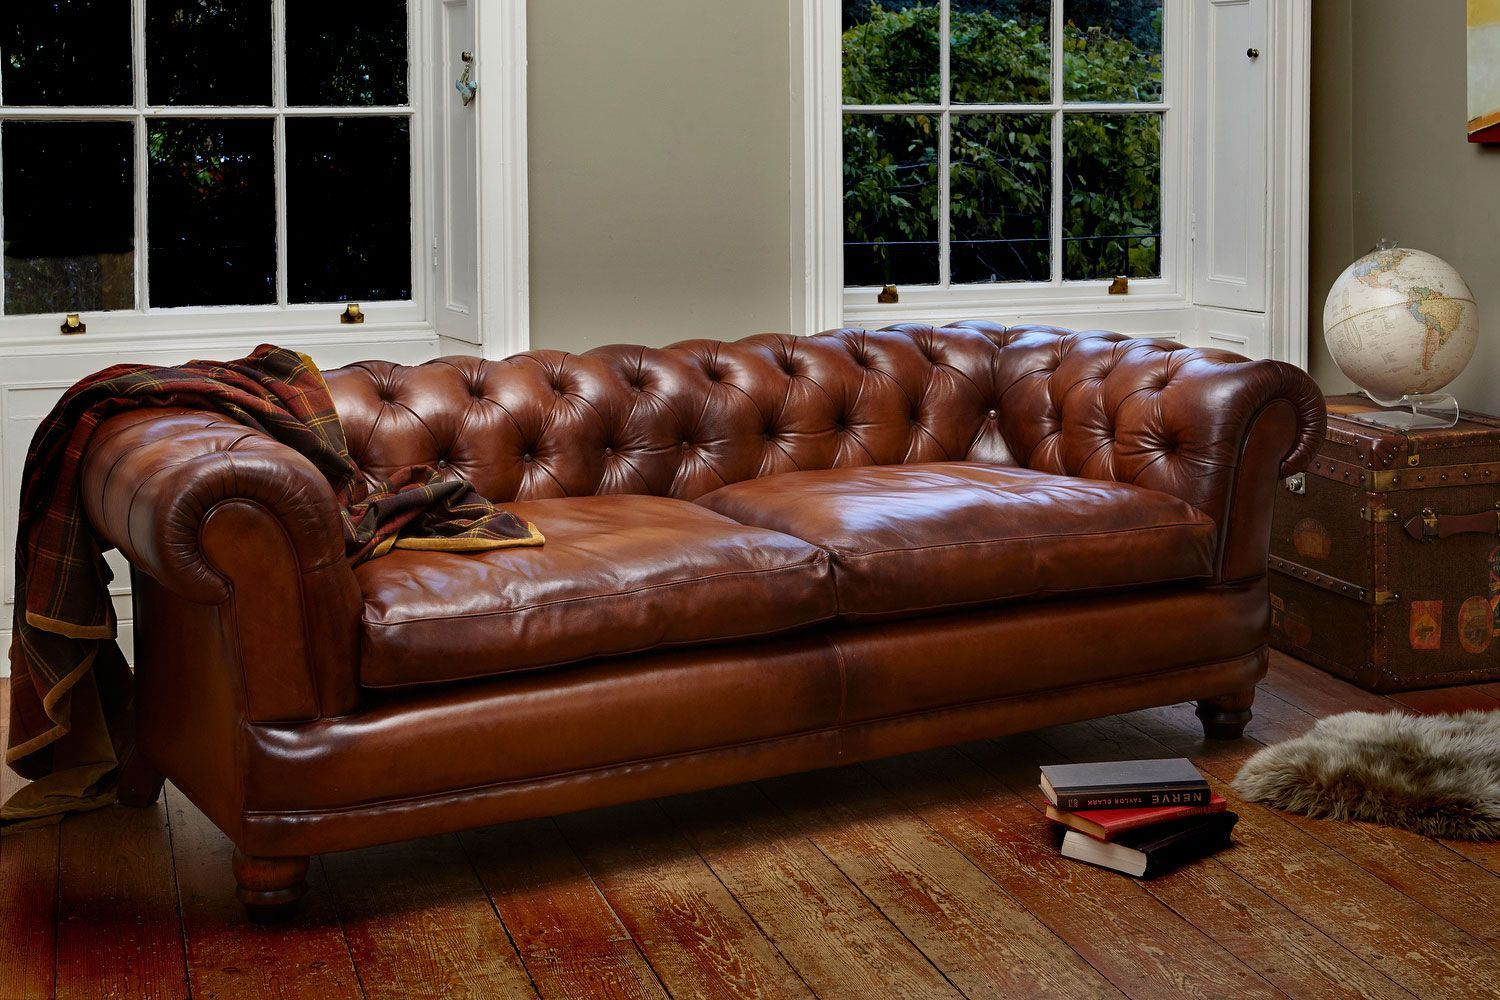 Brown tufted chesterfield sofa buying tips for a chesterfield sofa check more at http www wearefound com buying tips for a chesterfield sofa